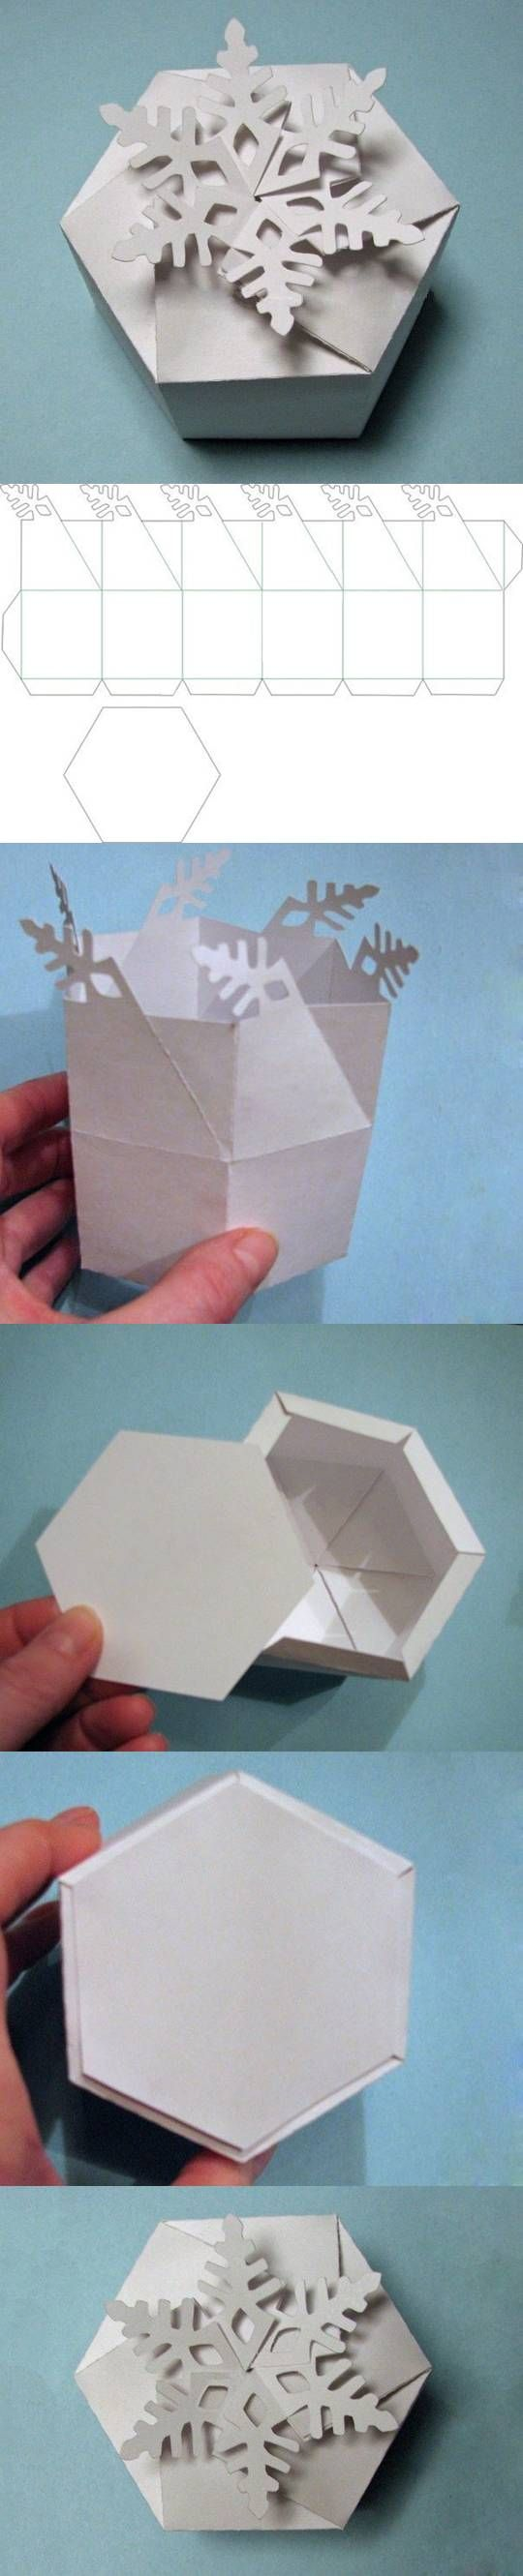 DIY Snowflake Gift Box